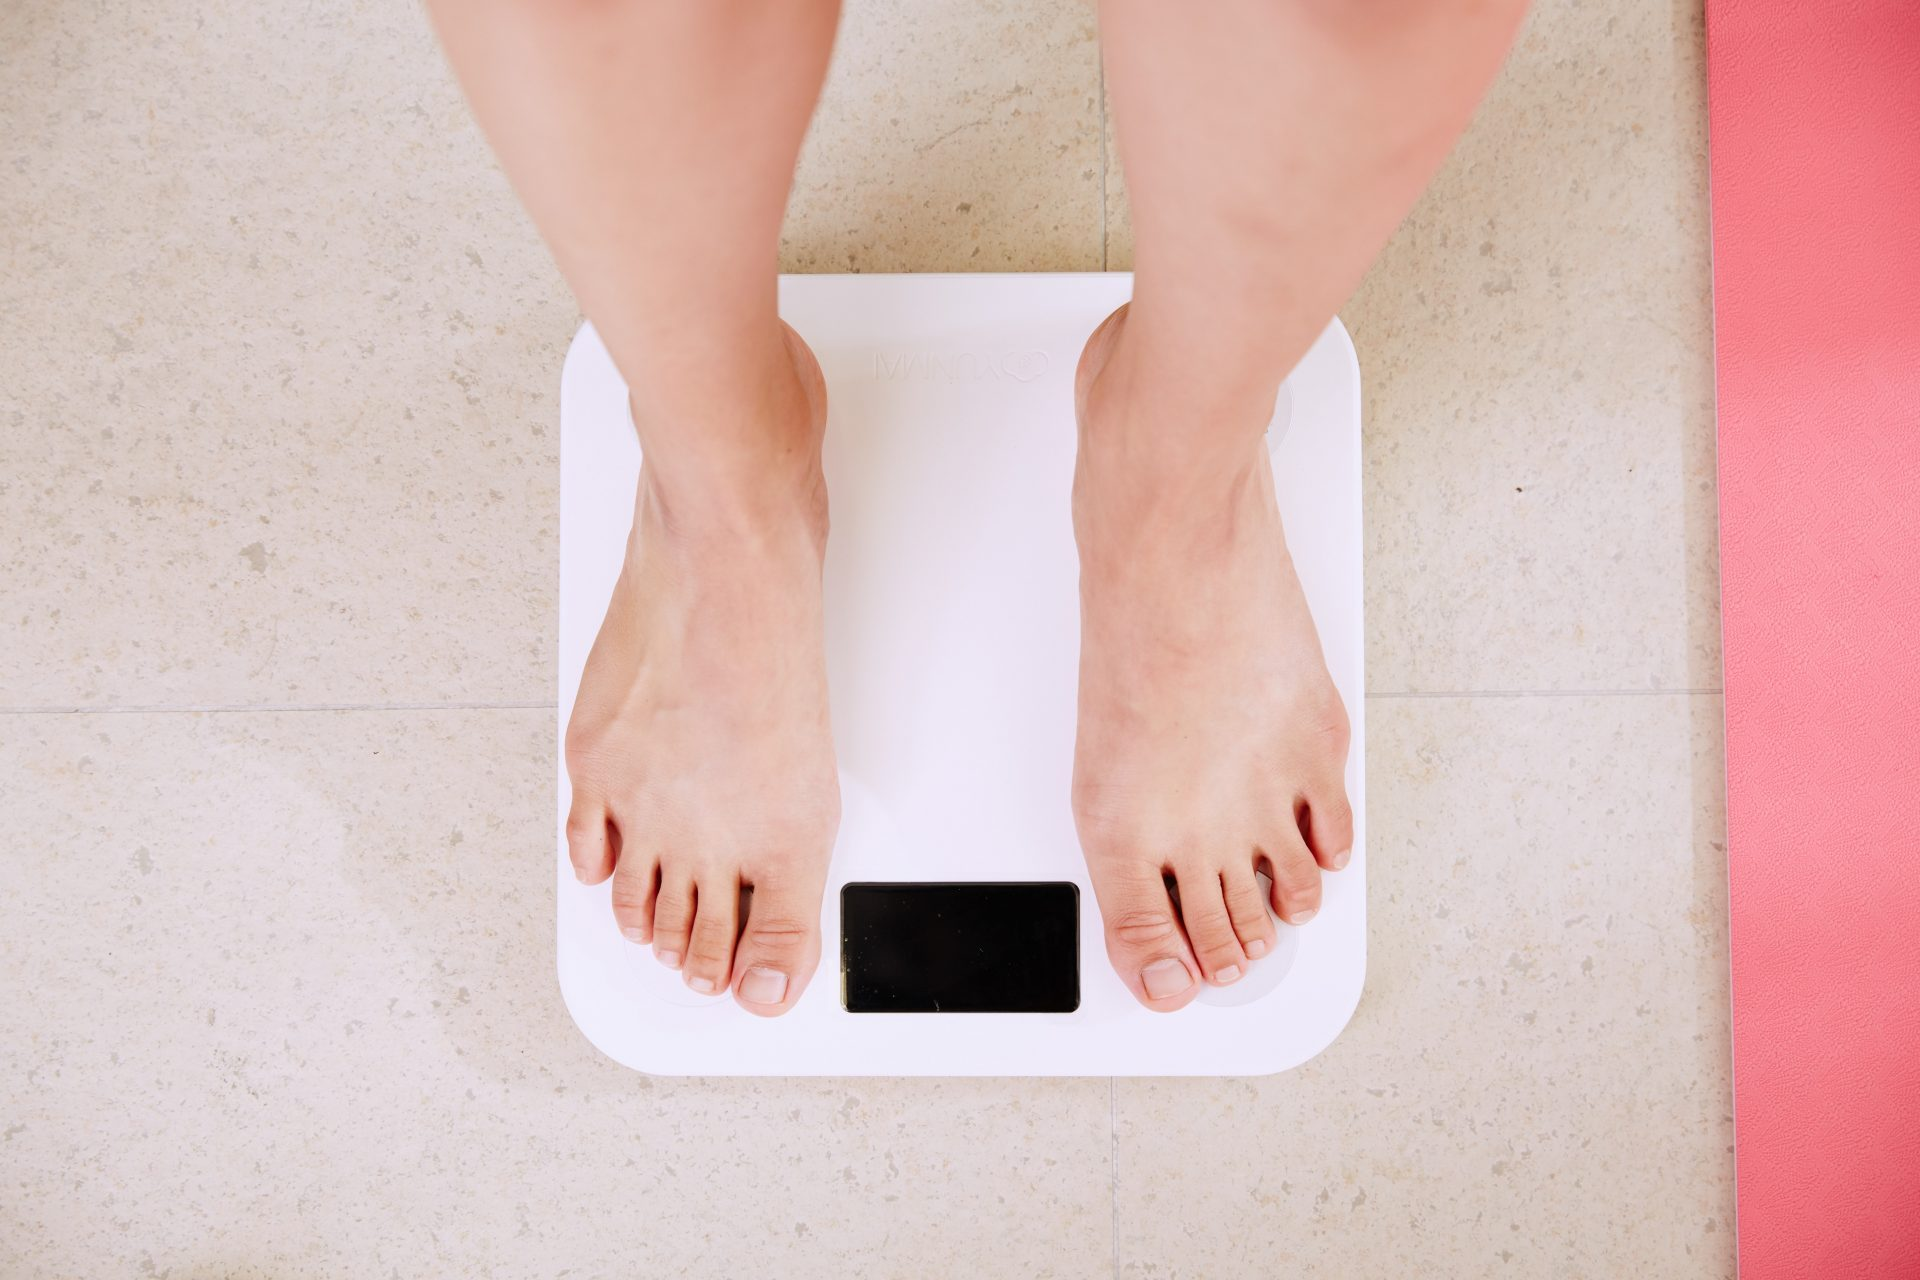 standing on weighing scale unsplash